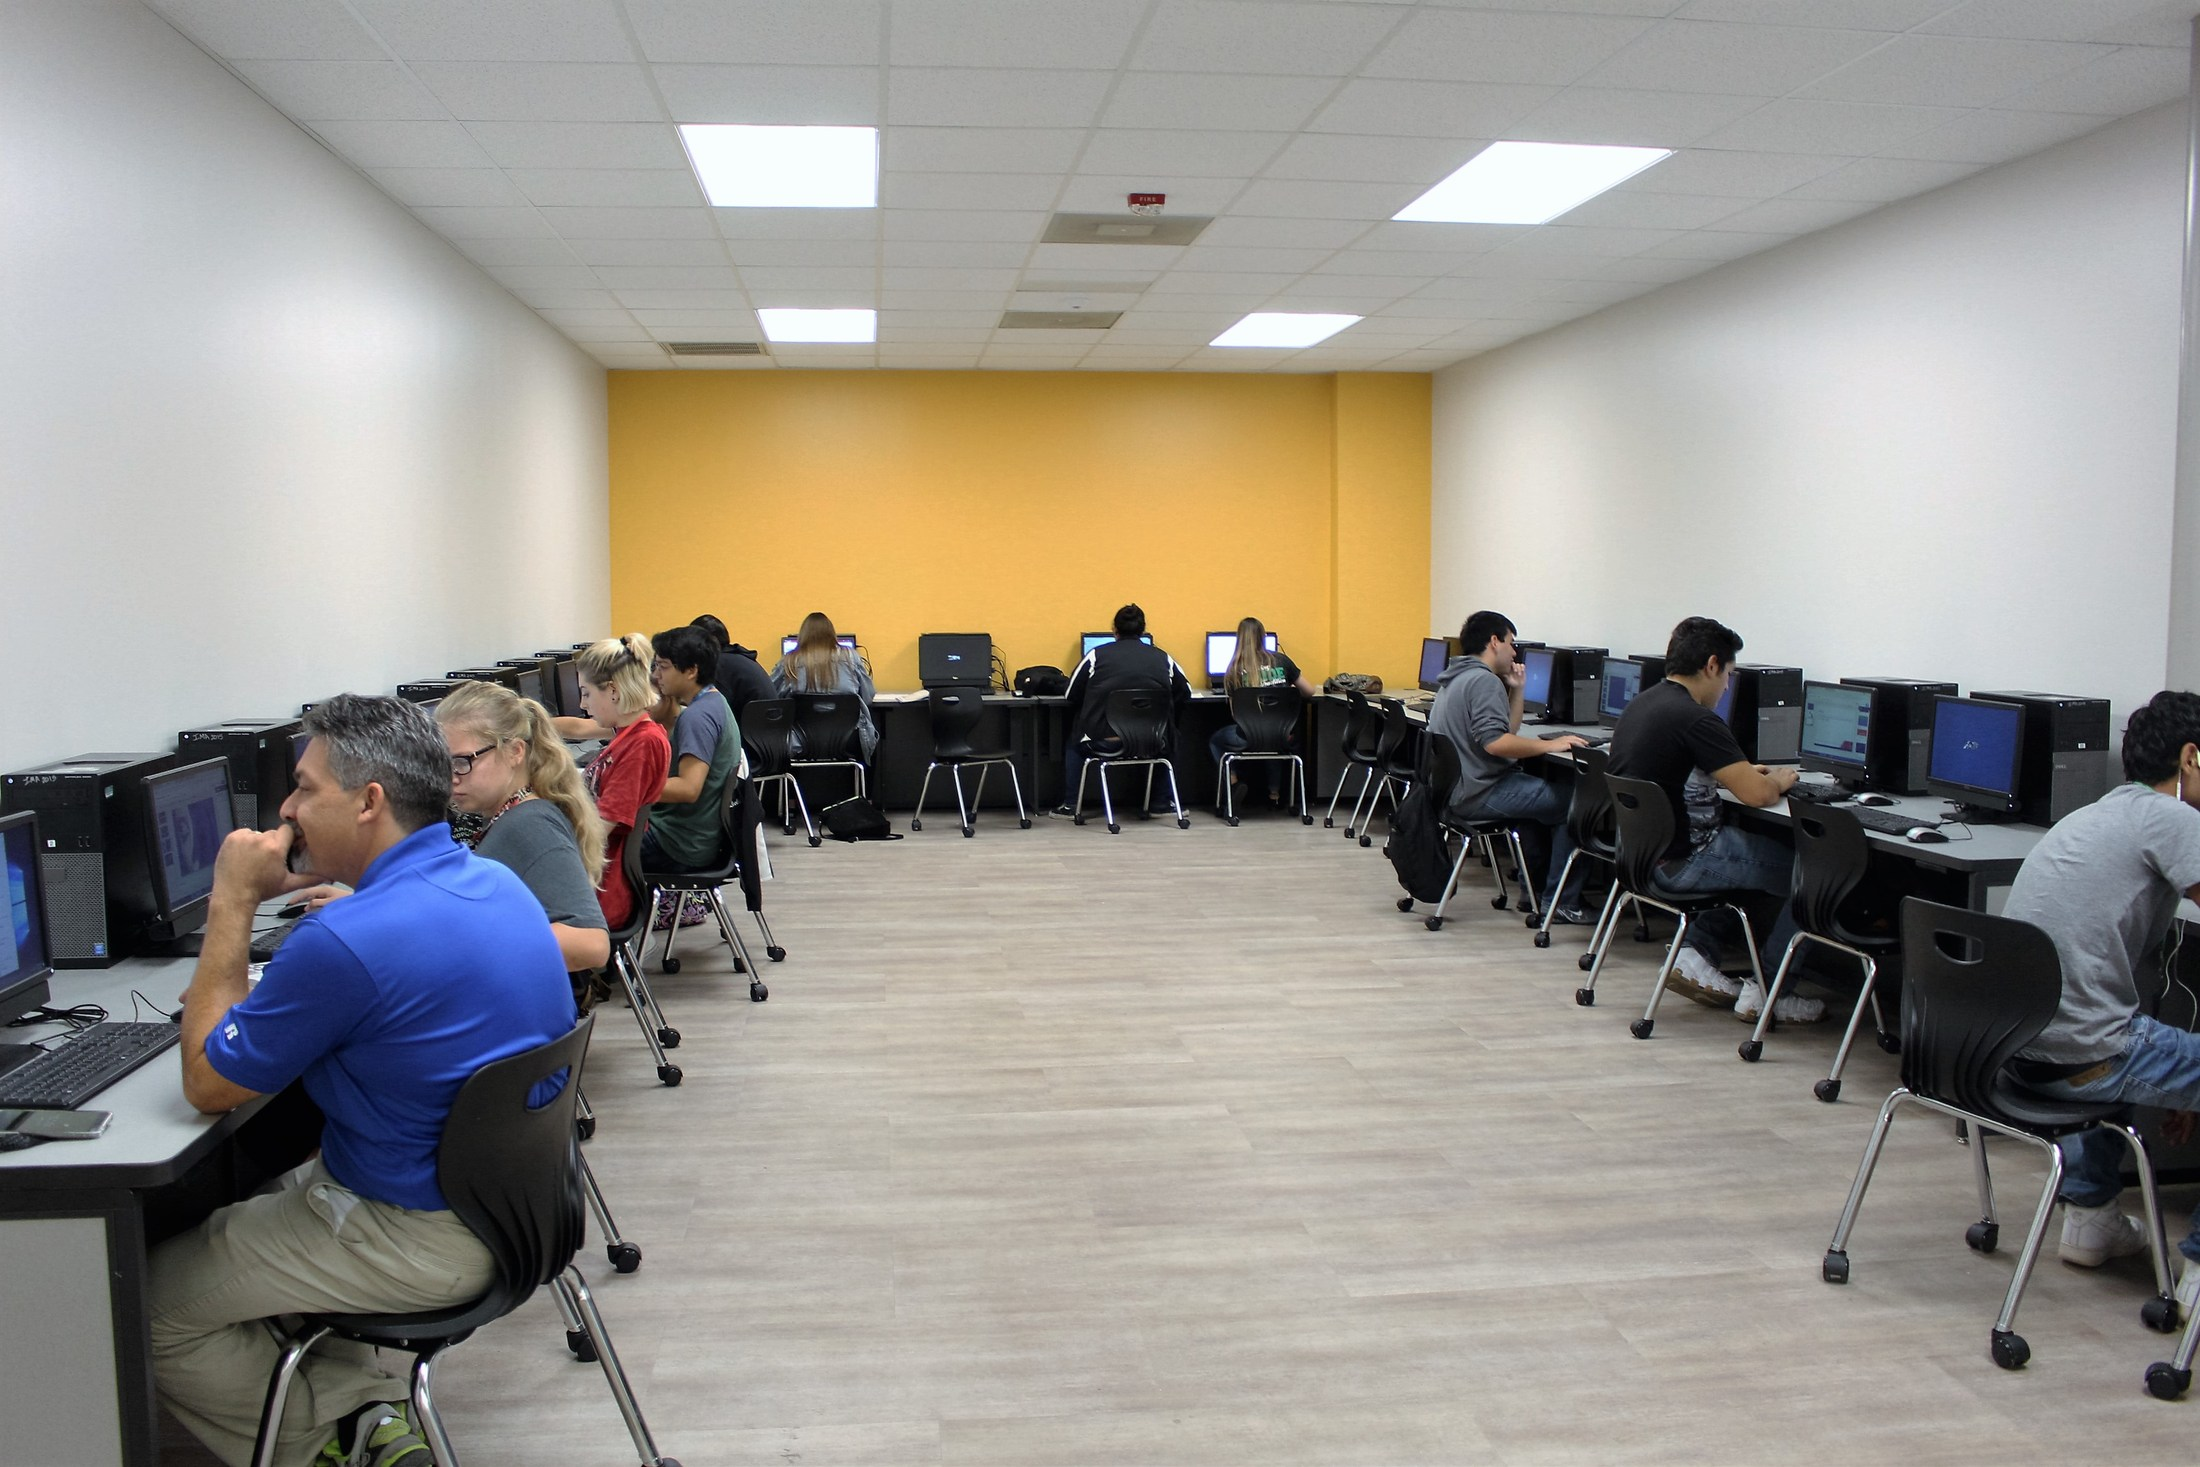 A class of students sitting at computers.